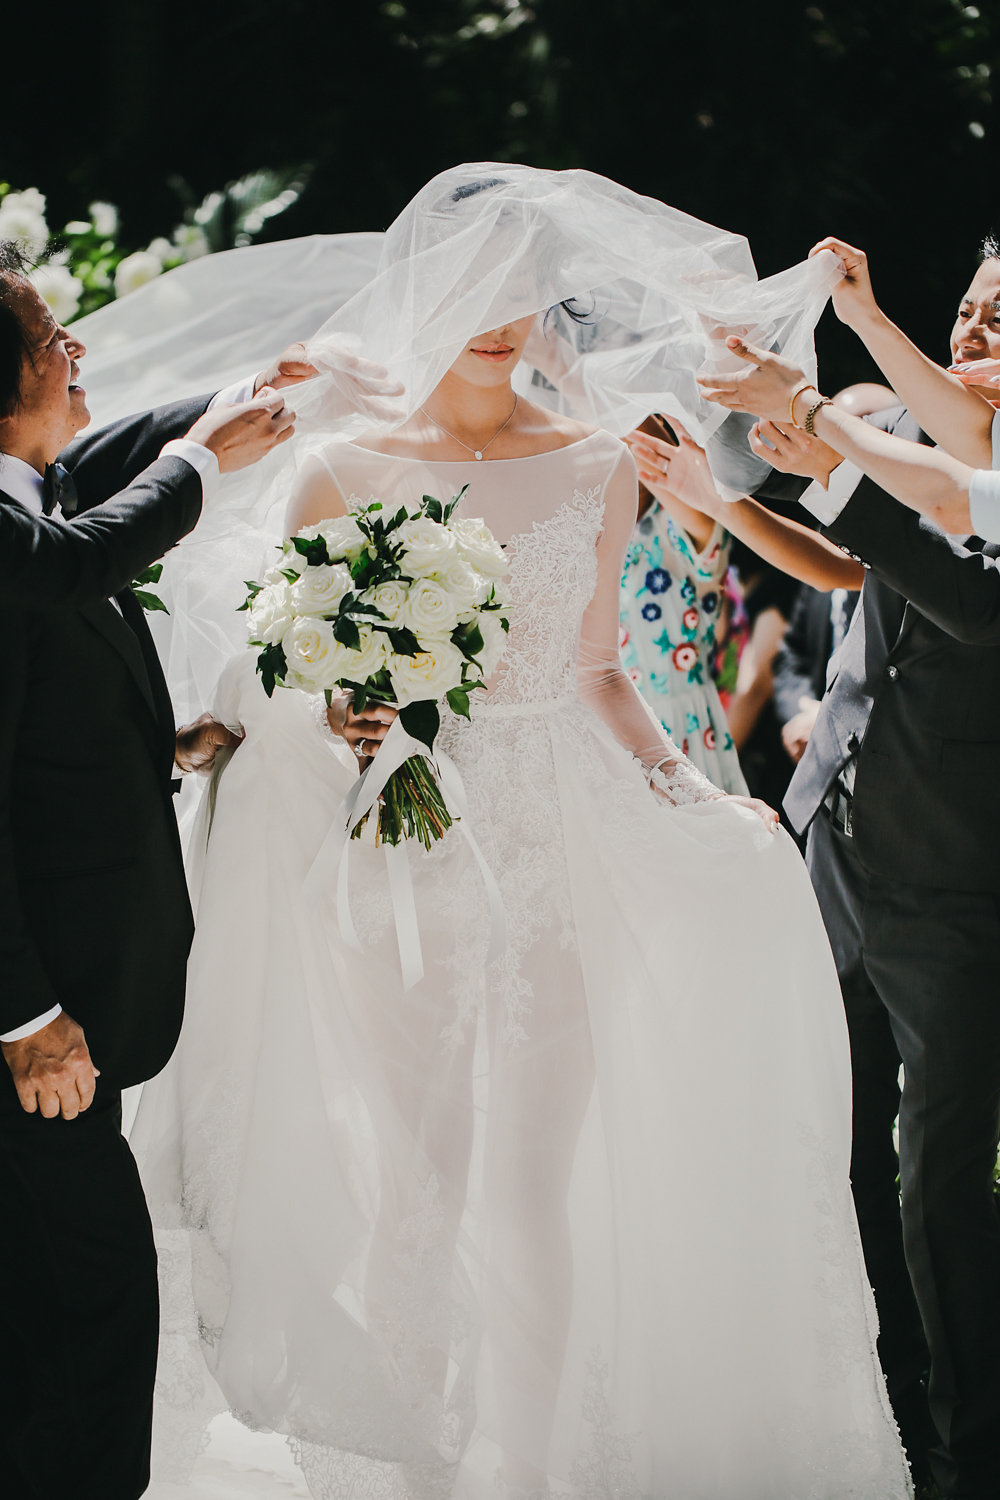 bridal processional - photo by Lara Hotz http://ruffledblog.com/secret-garden-inspired-australian-wedding